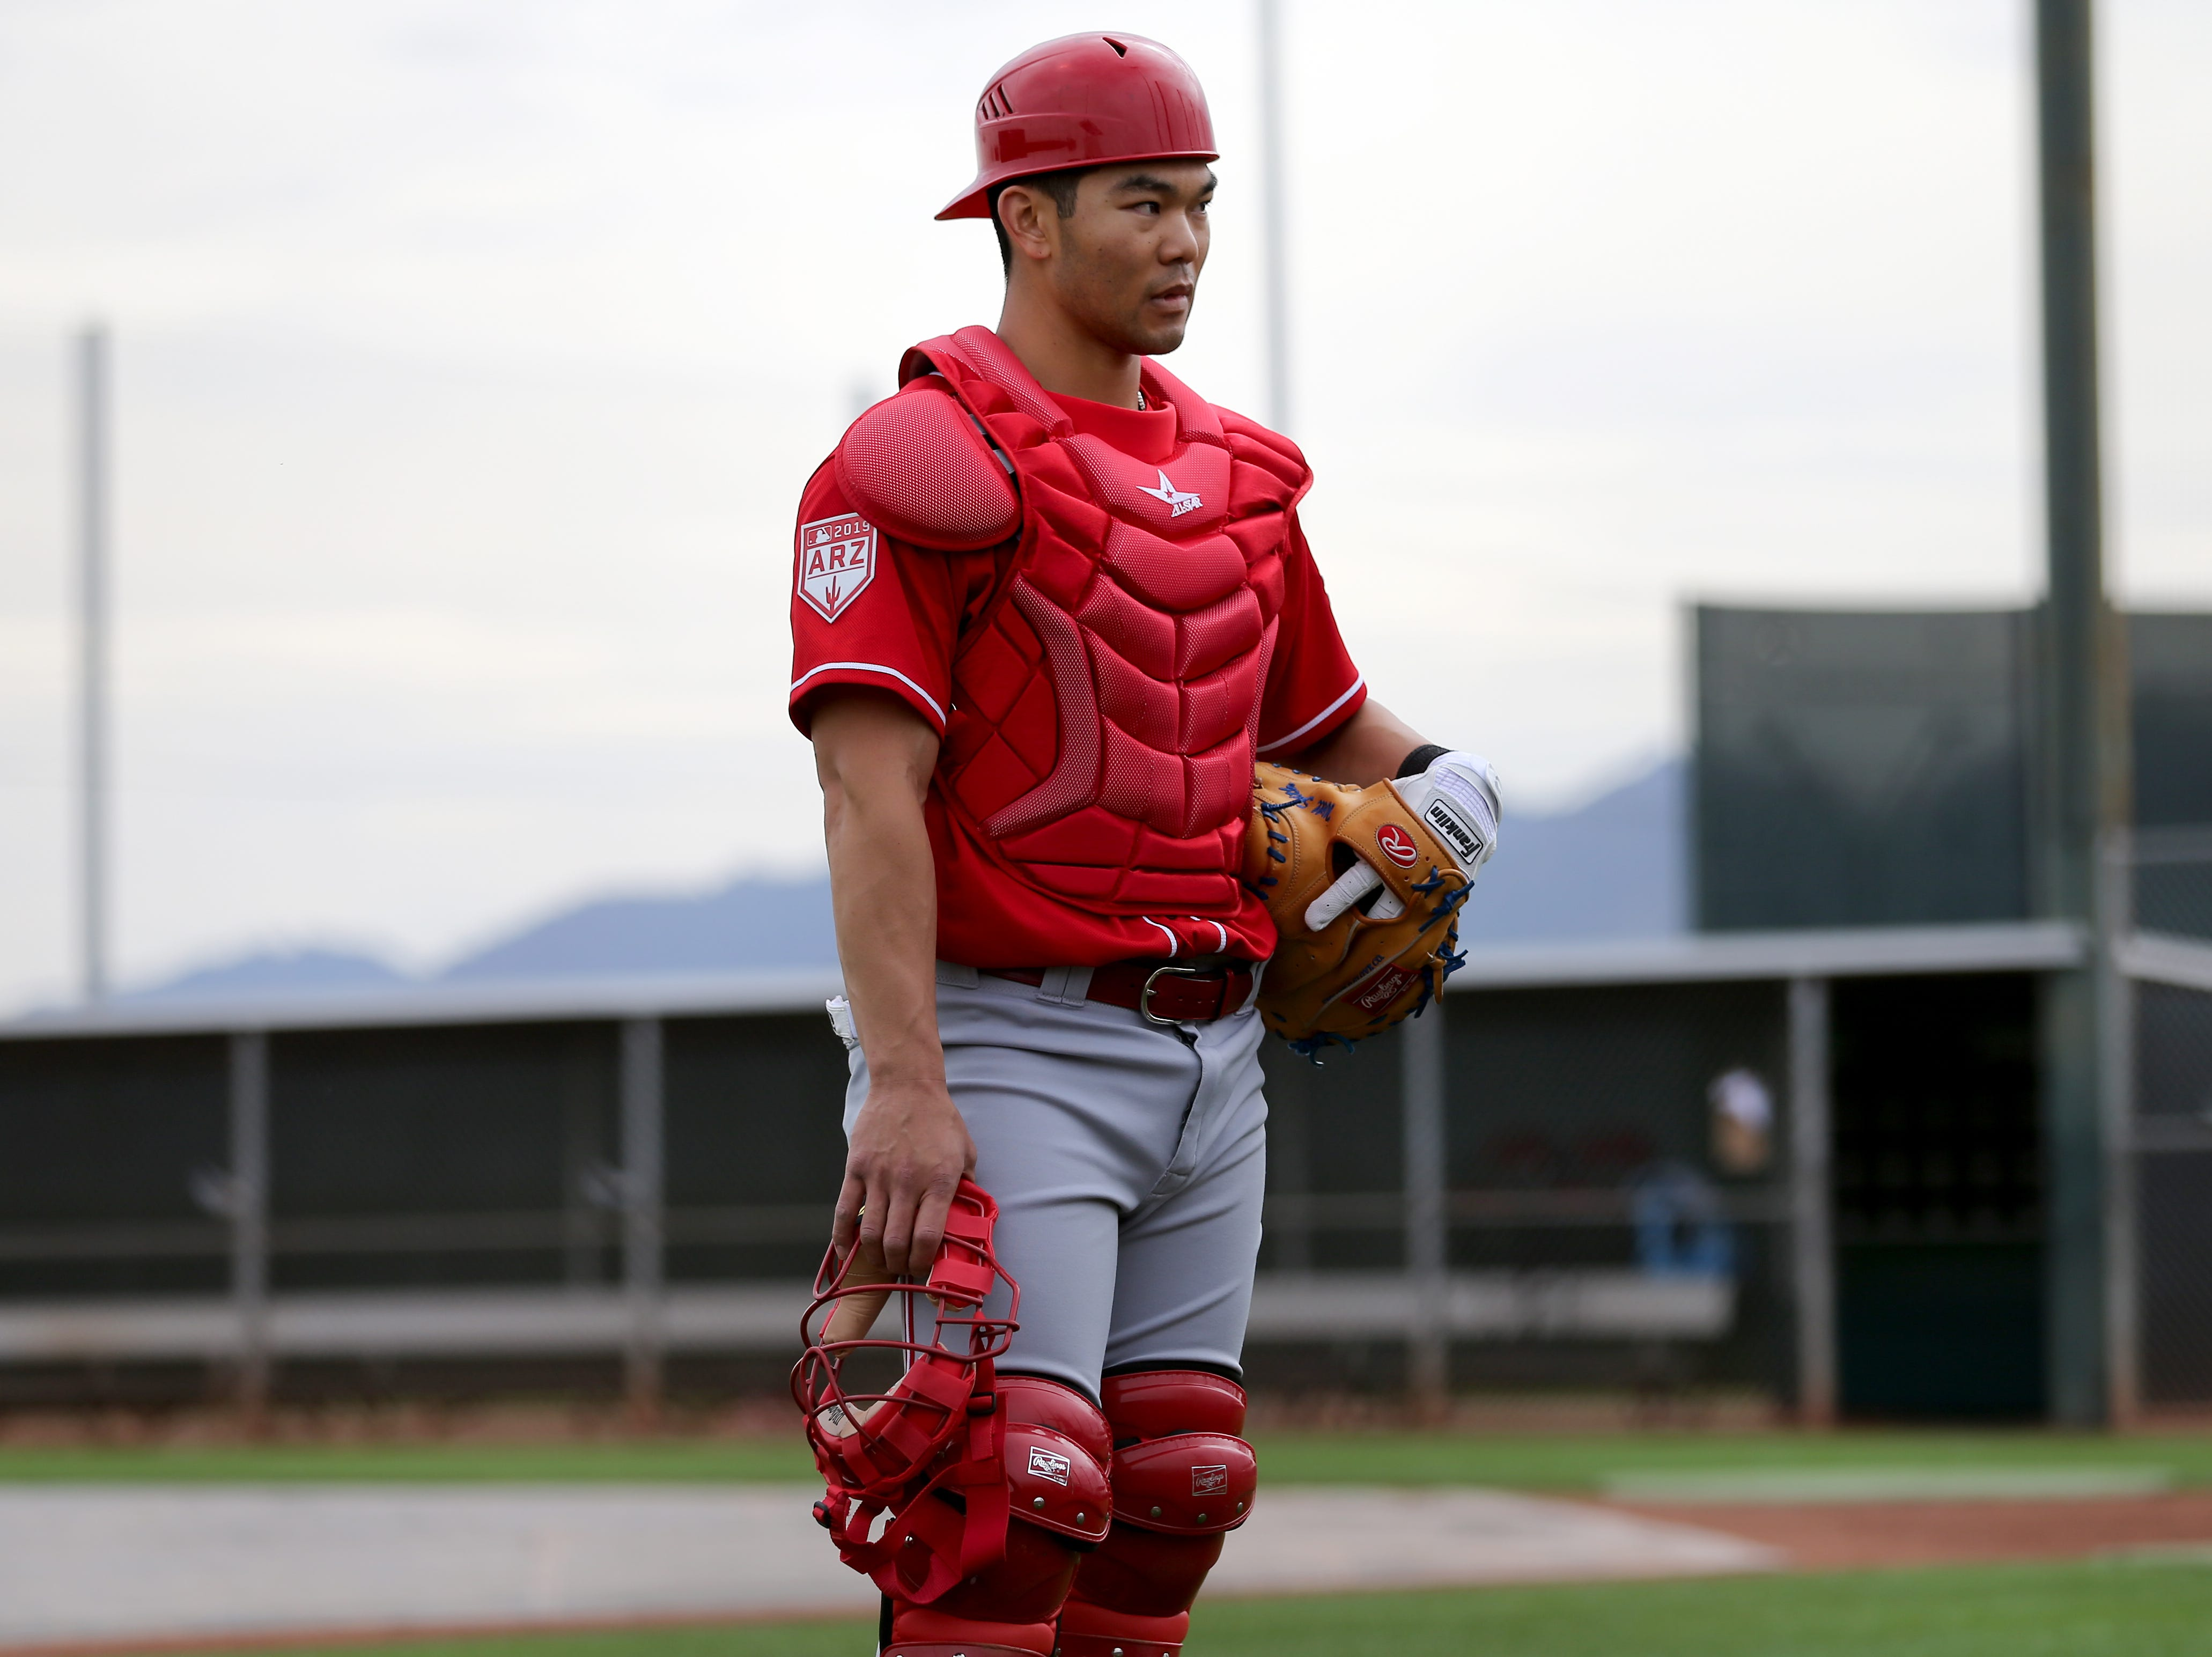 Cincinnati Reds catcher Joe Connor (17) waits his turn during drills, Wednesday, Feb. 13, 2019, at the Cincinnati Reds spring training facility in Goodyear, Arizona.